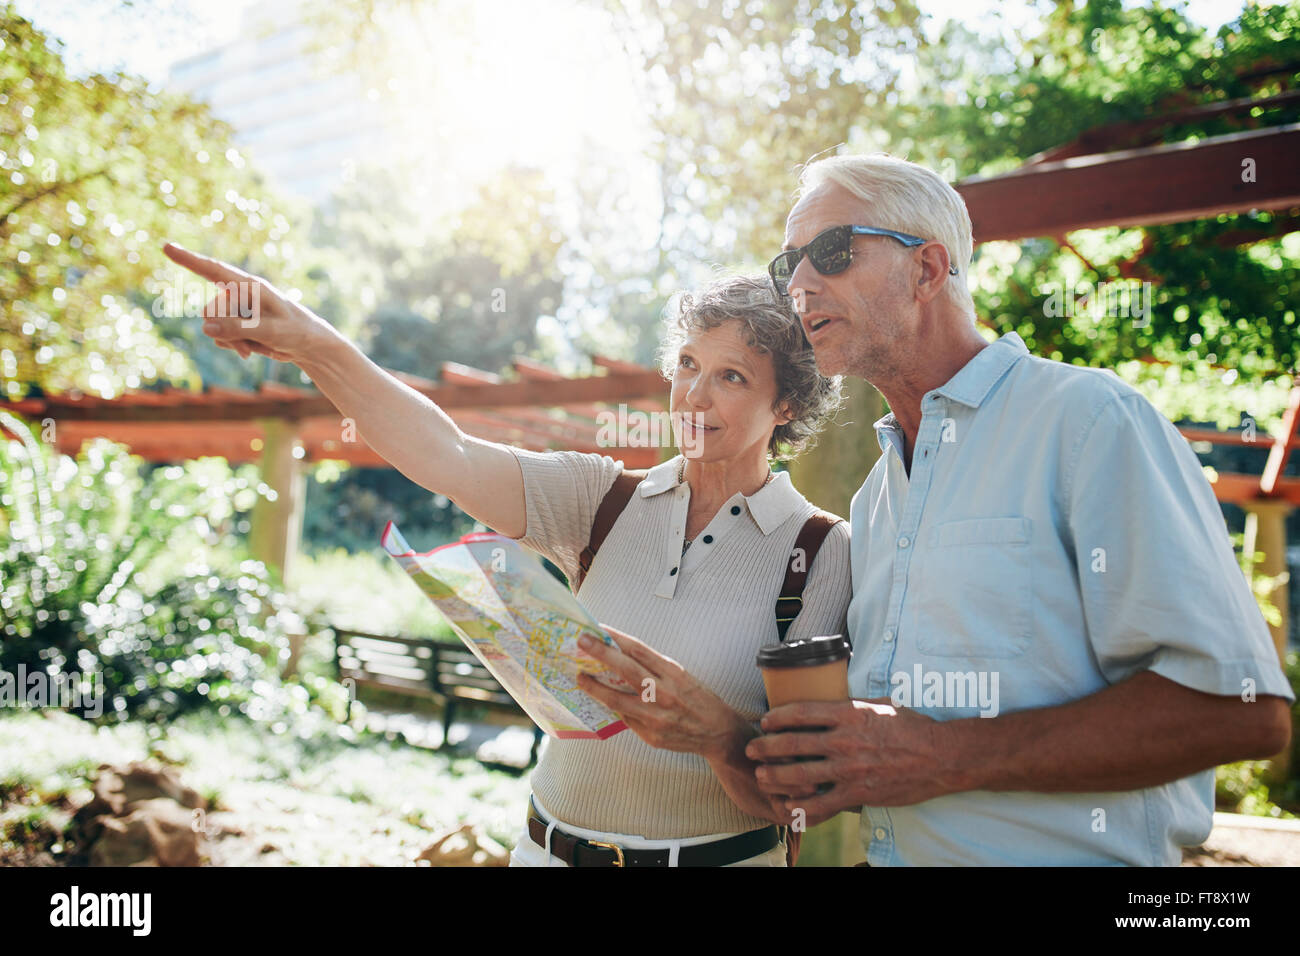 Couple of senior tourists using a city guide searching locations and pointing - Stock Image